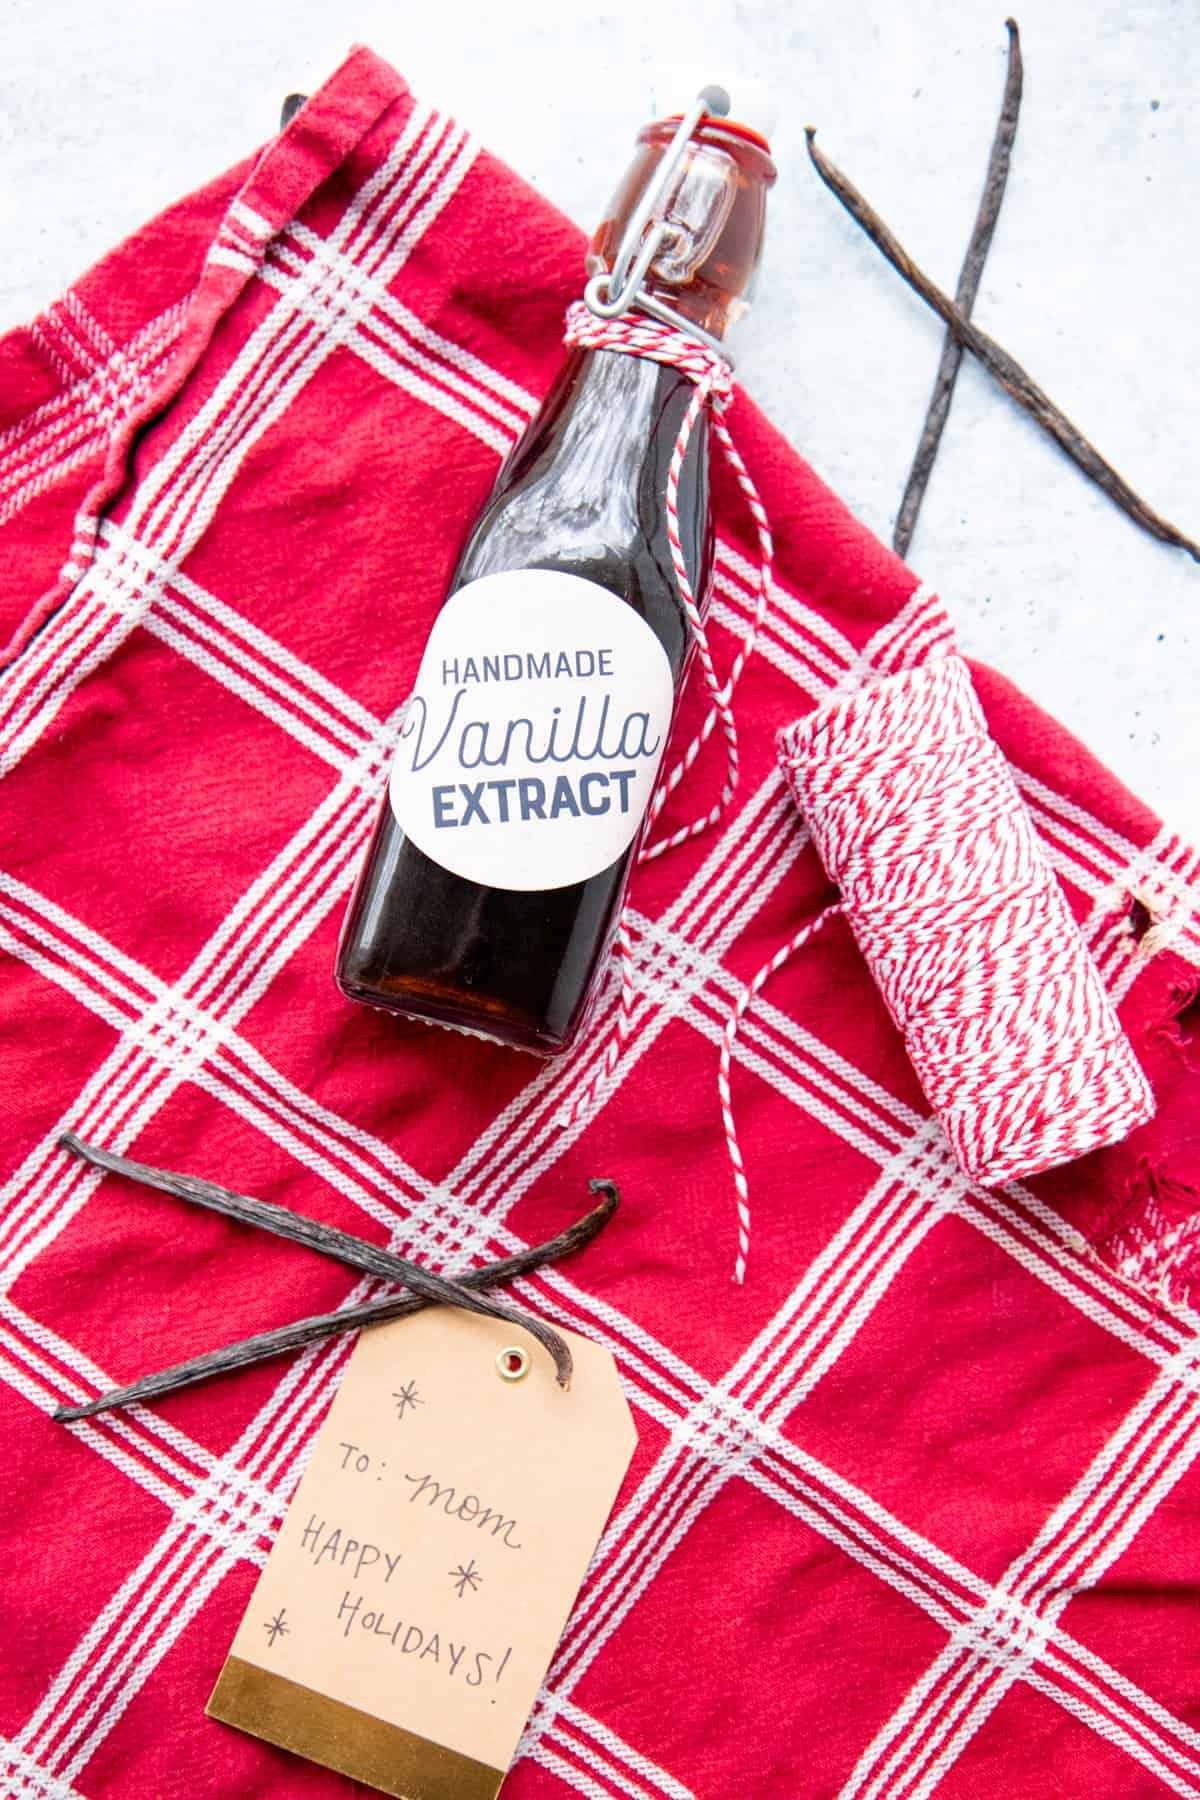 A bottle of homemade vanilla extract lays on red and white fabric, surrounded by whole vanilla beans.